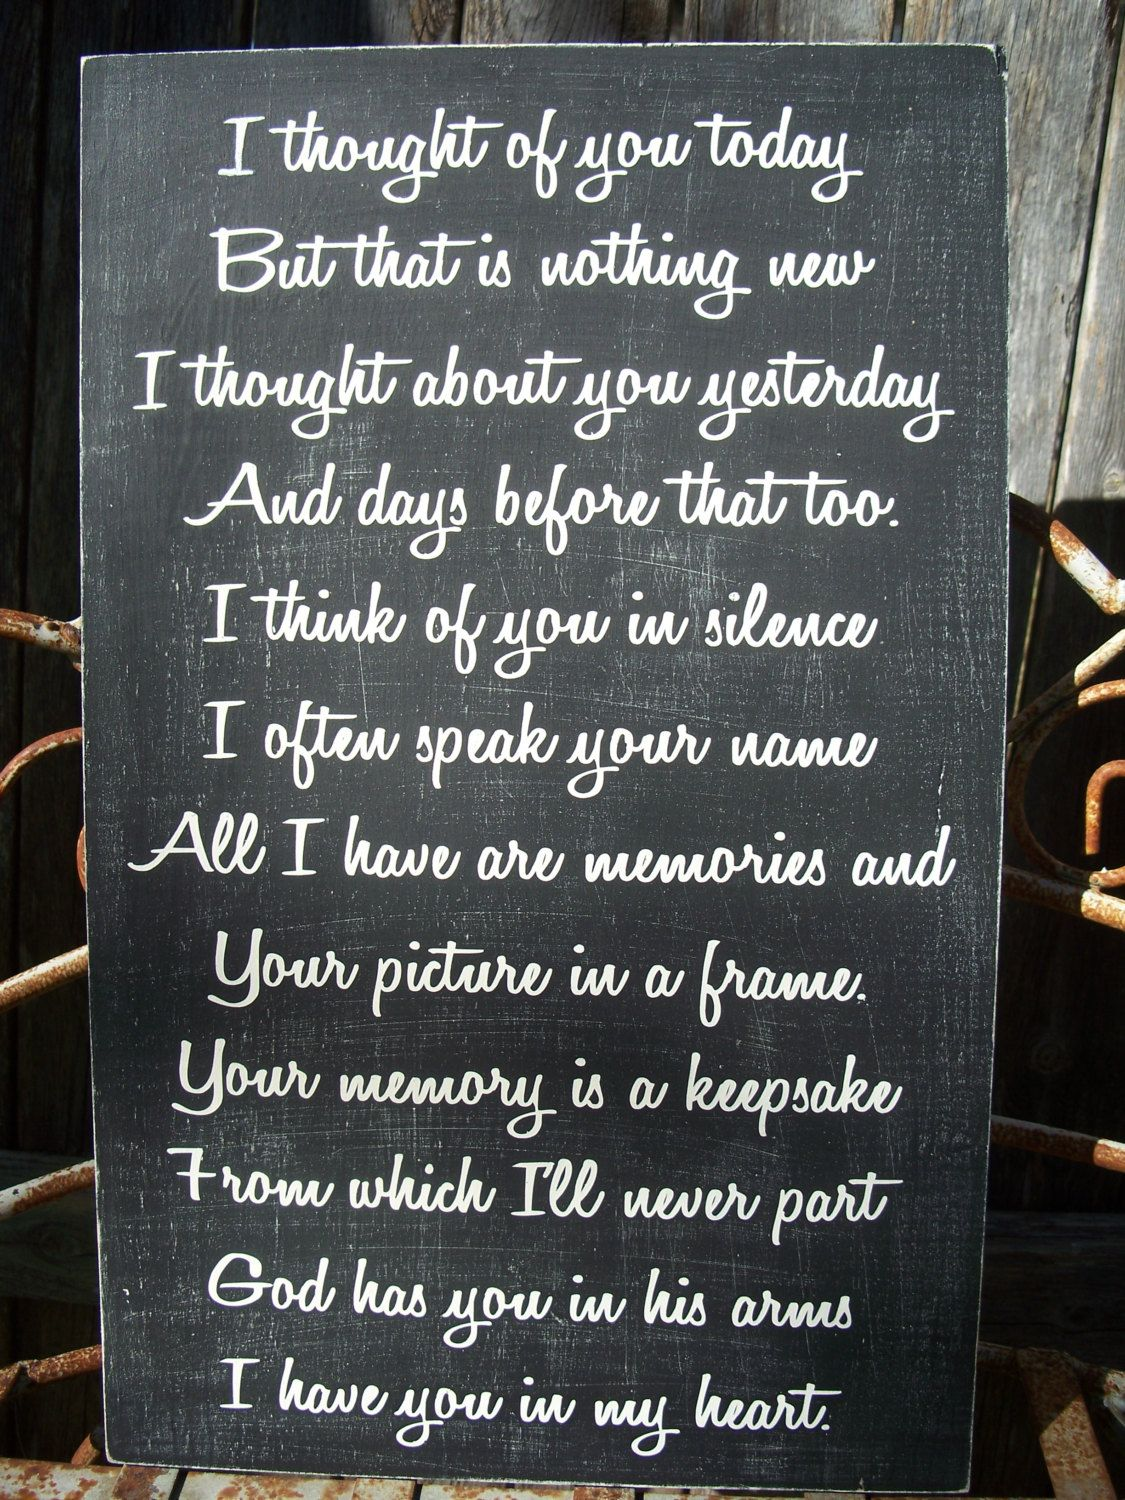 In Remembrance Quotes Of A Loved One Memory Sign  Wedding Memory Sign  I Thought About You Today